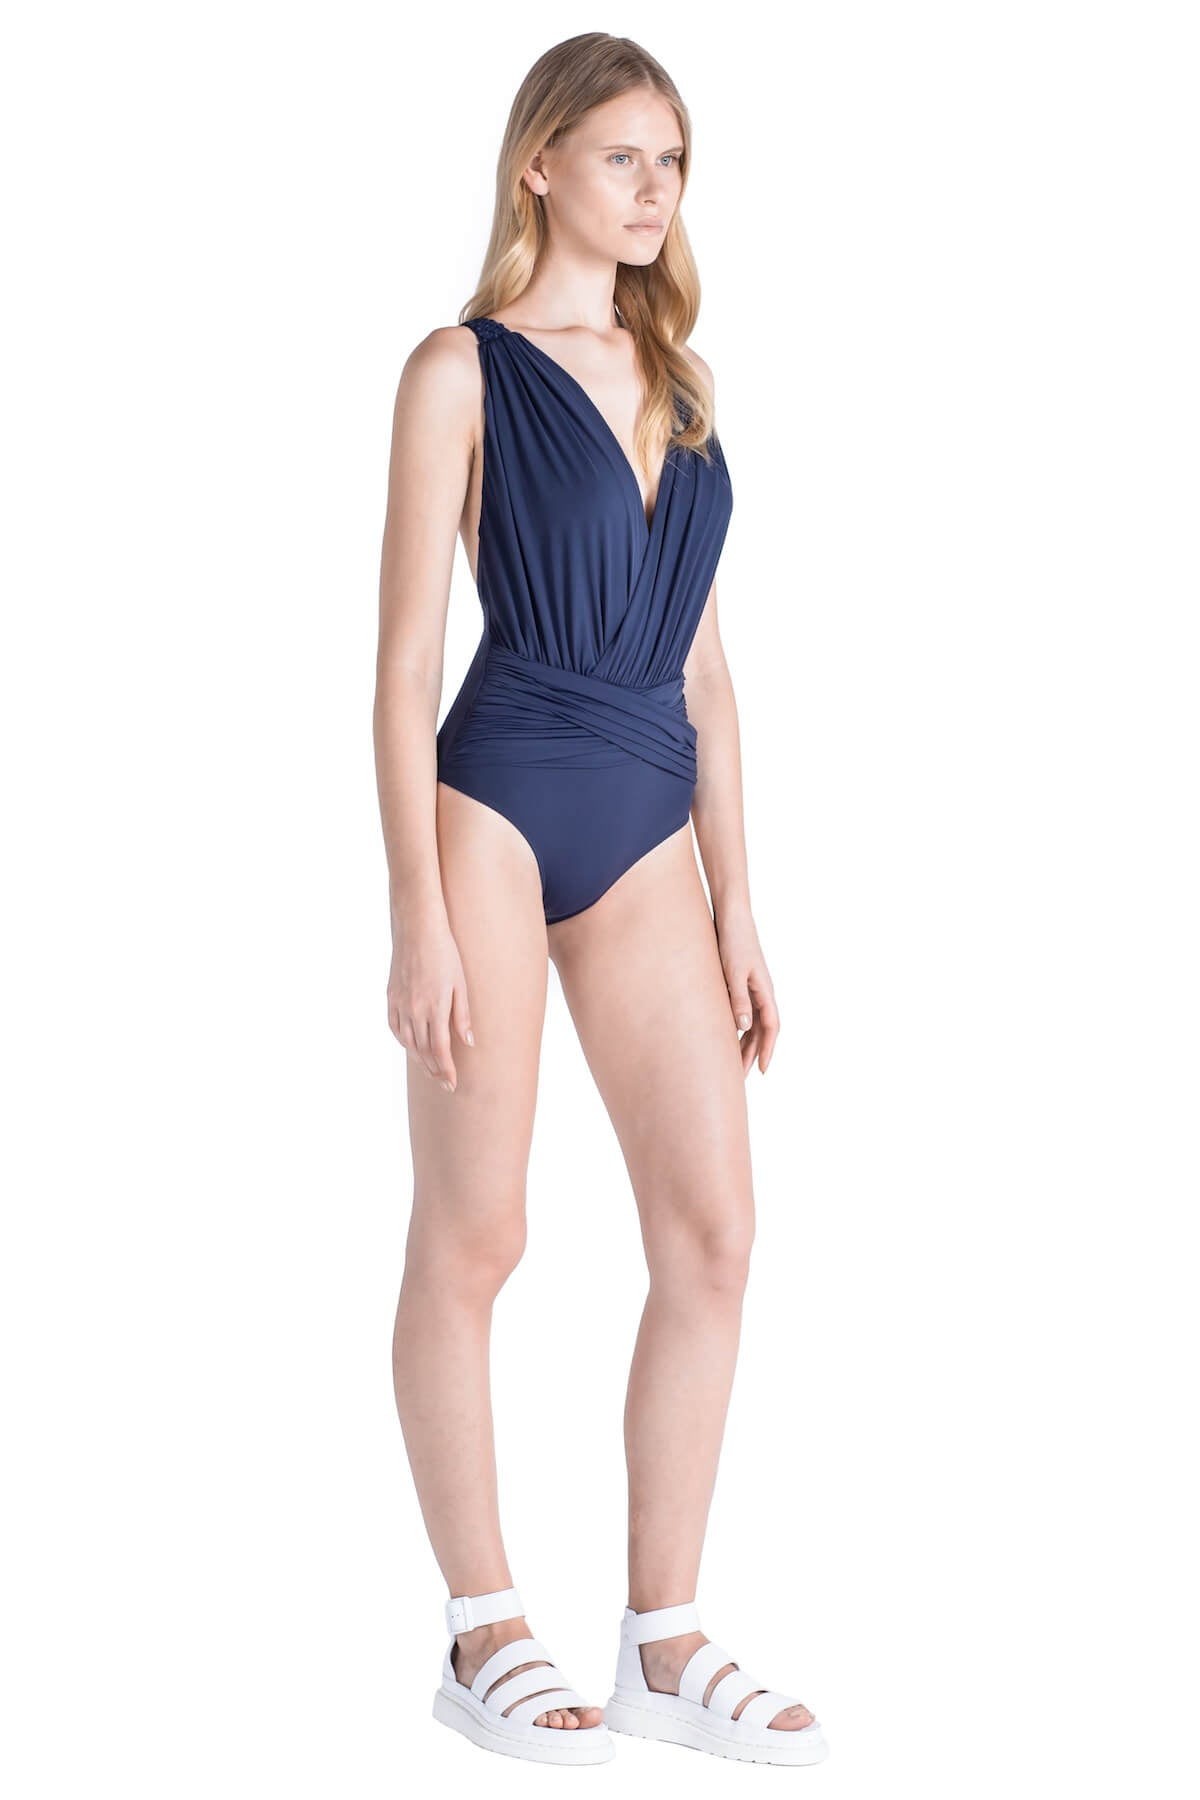 Side of Celeste deep plunge neckline swimsuit in Navy.